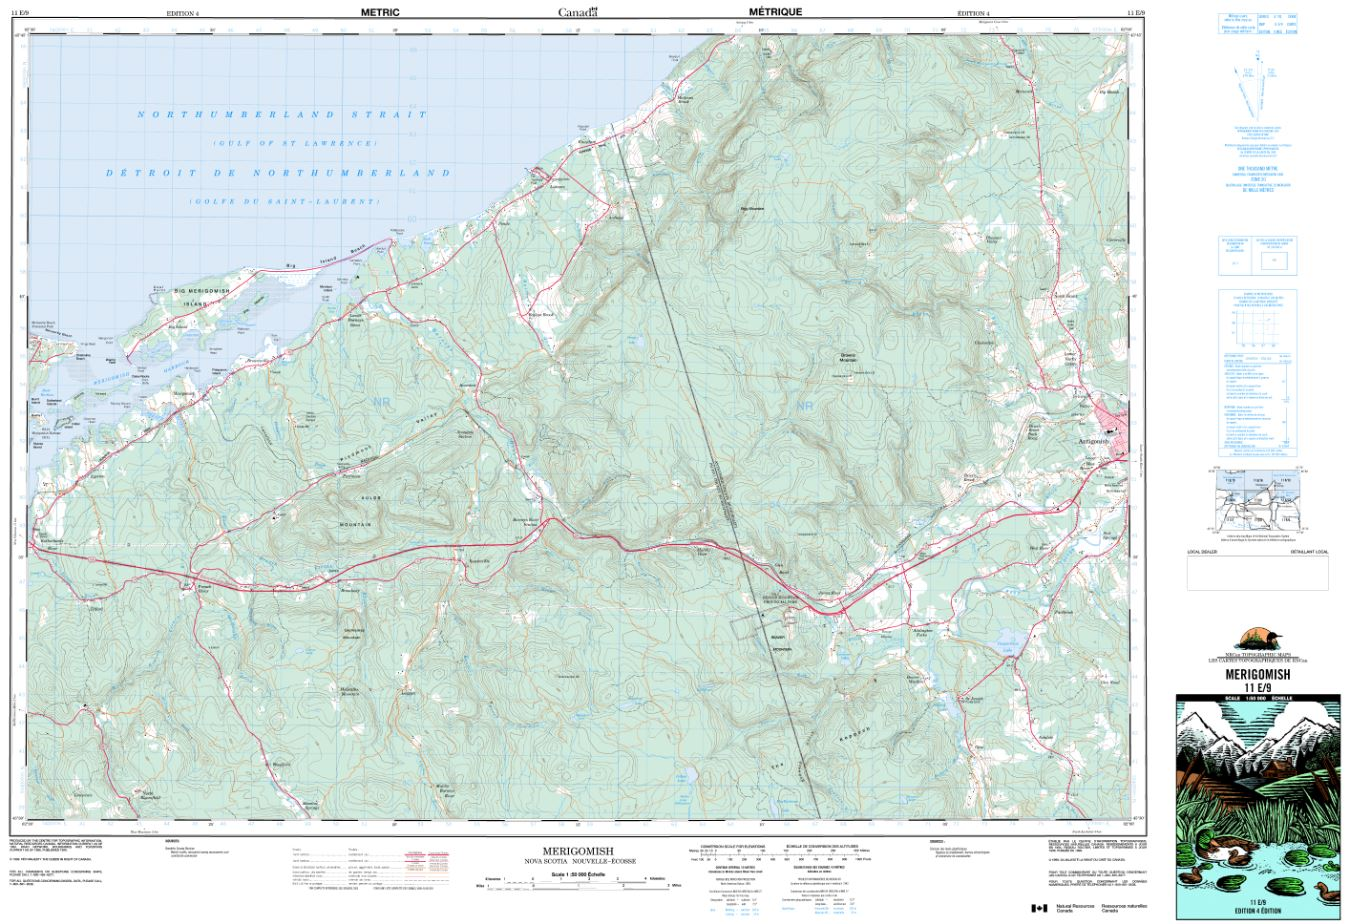 11E/09 Merigomish Topographic Map Nova Scotia